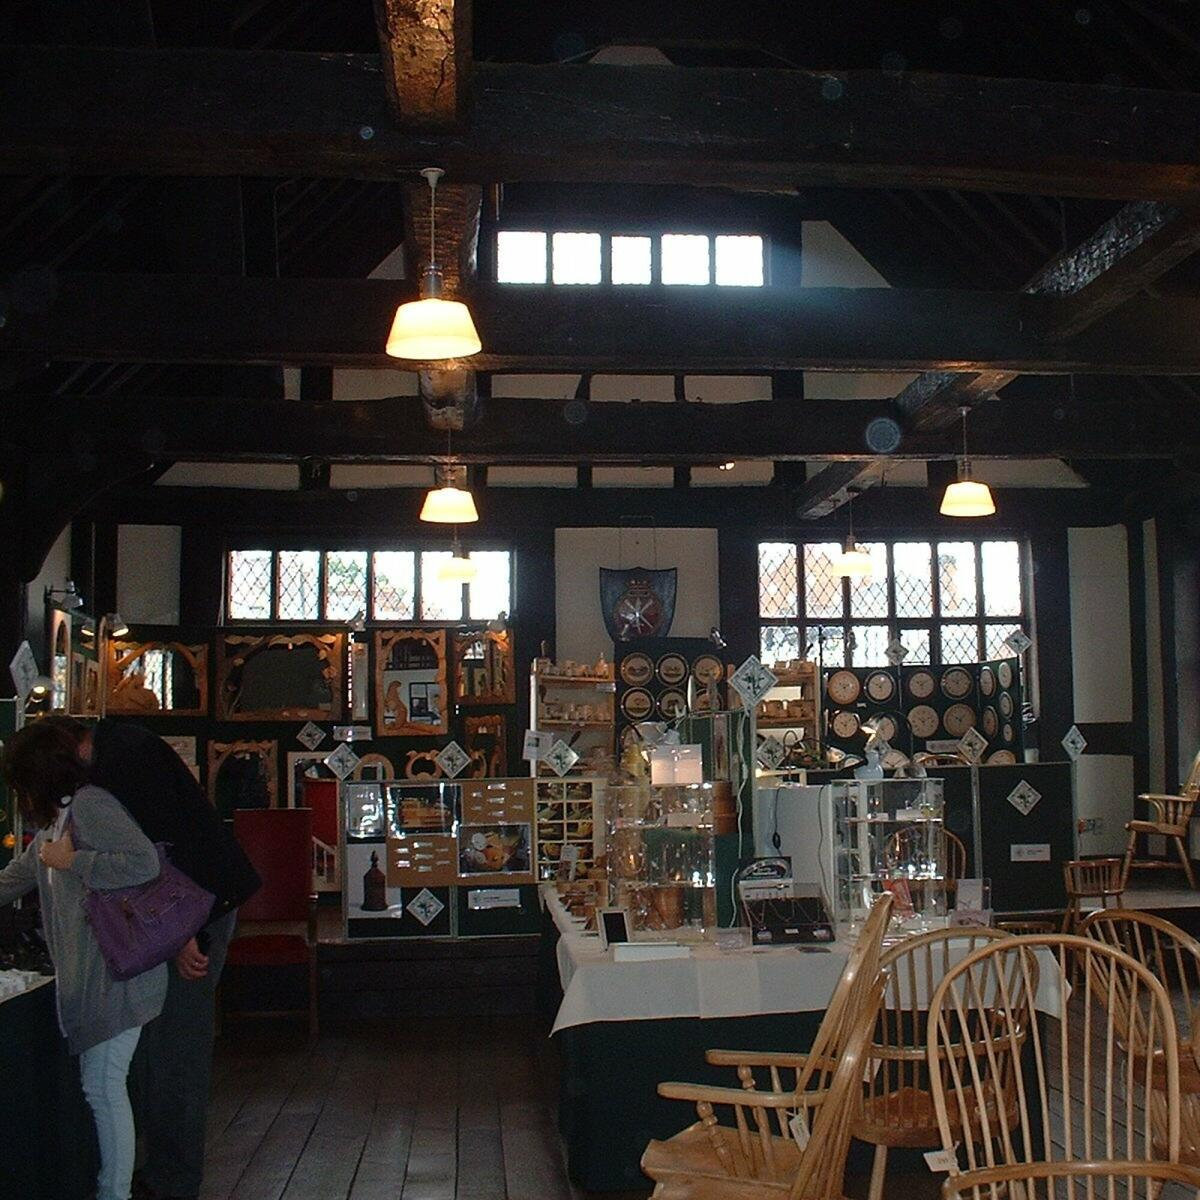 Craft exhibition and sale in the Market House